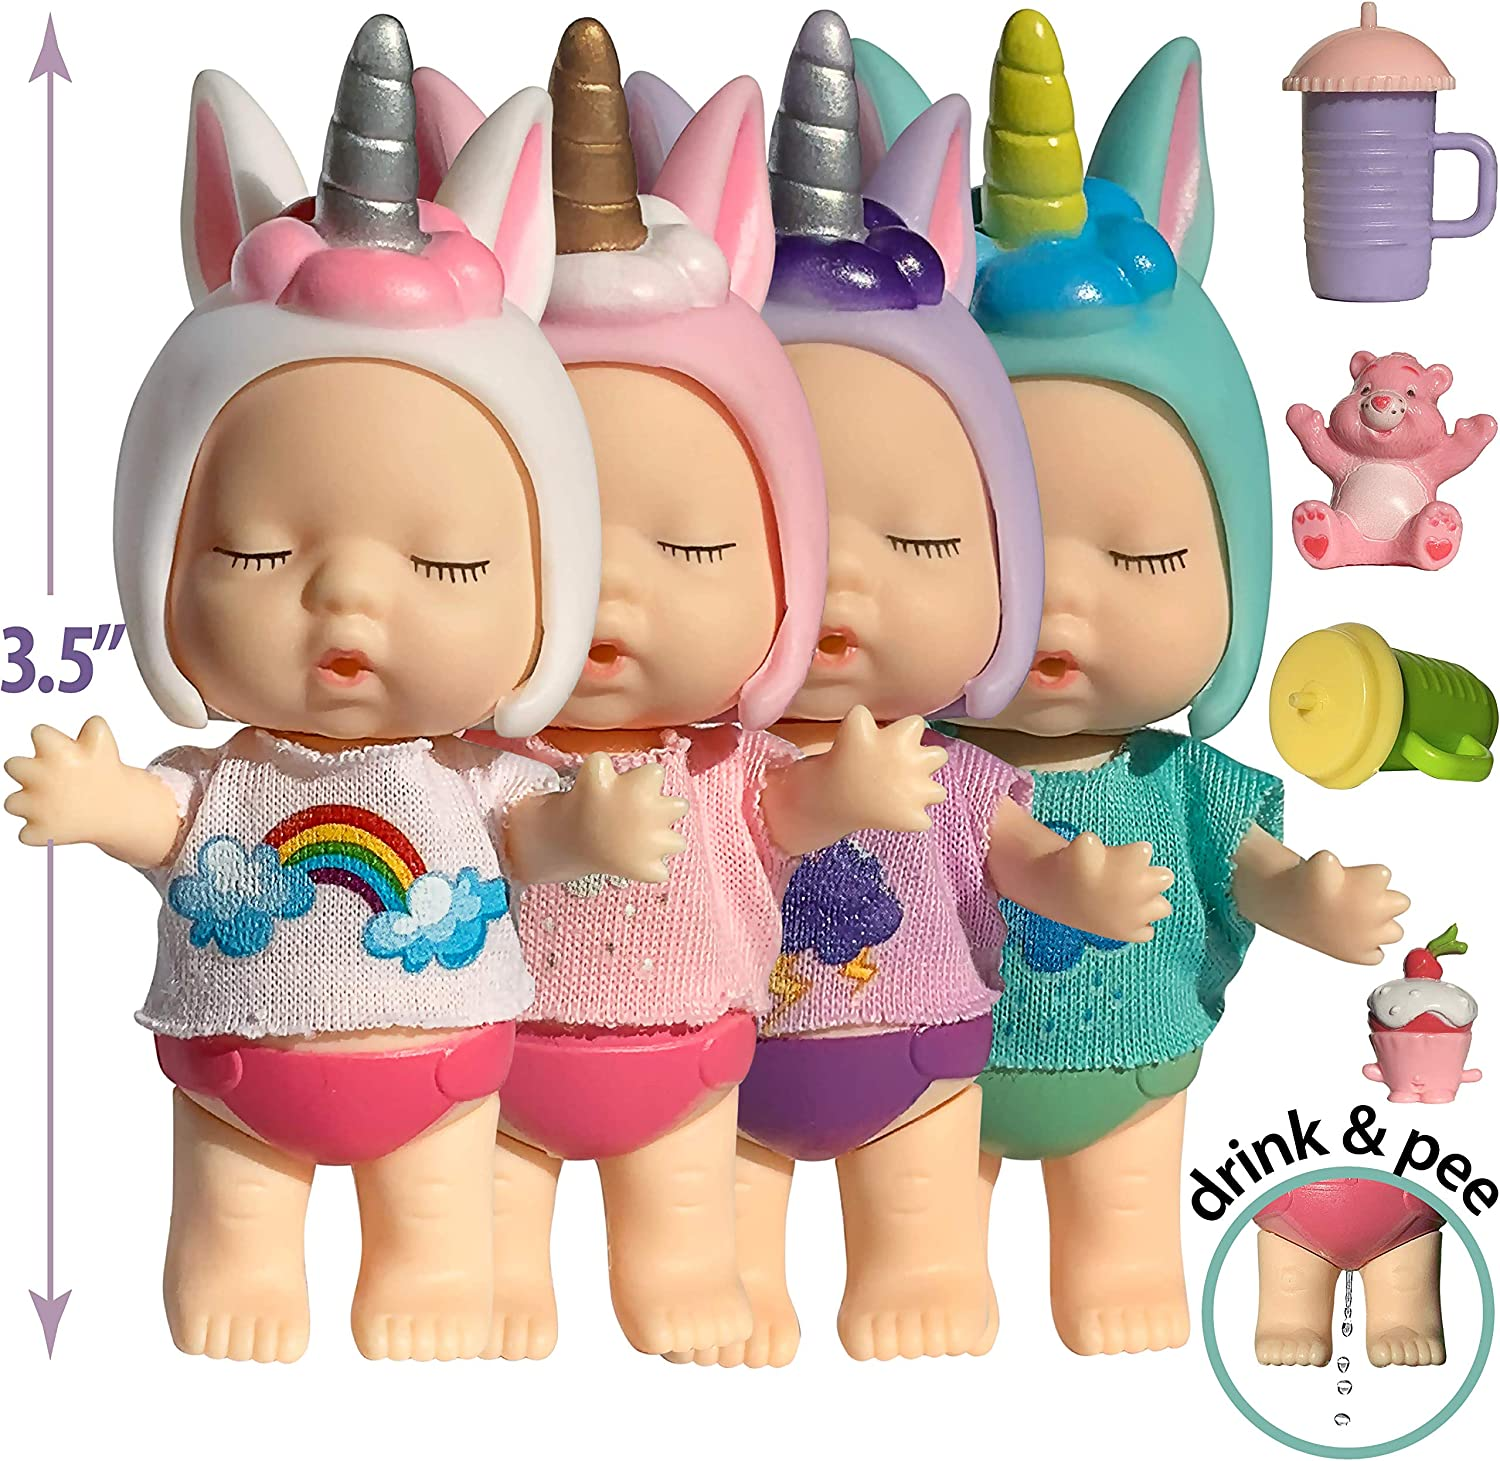 Unicorn Mini Baby Dollhouse Dolls for 3 4 5 6 Year Old Girls 3 Inch Small Baby Doll Set w Accessories - Tiny Figure Unicorn Gifts for Girls Unicorn Doll Toys - Drink n Wet Mini Babies Unicorn Figurine